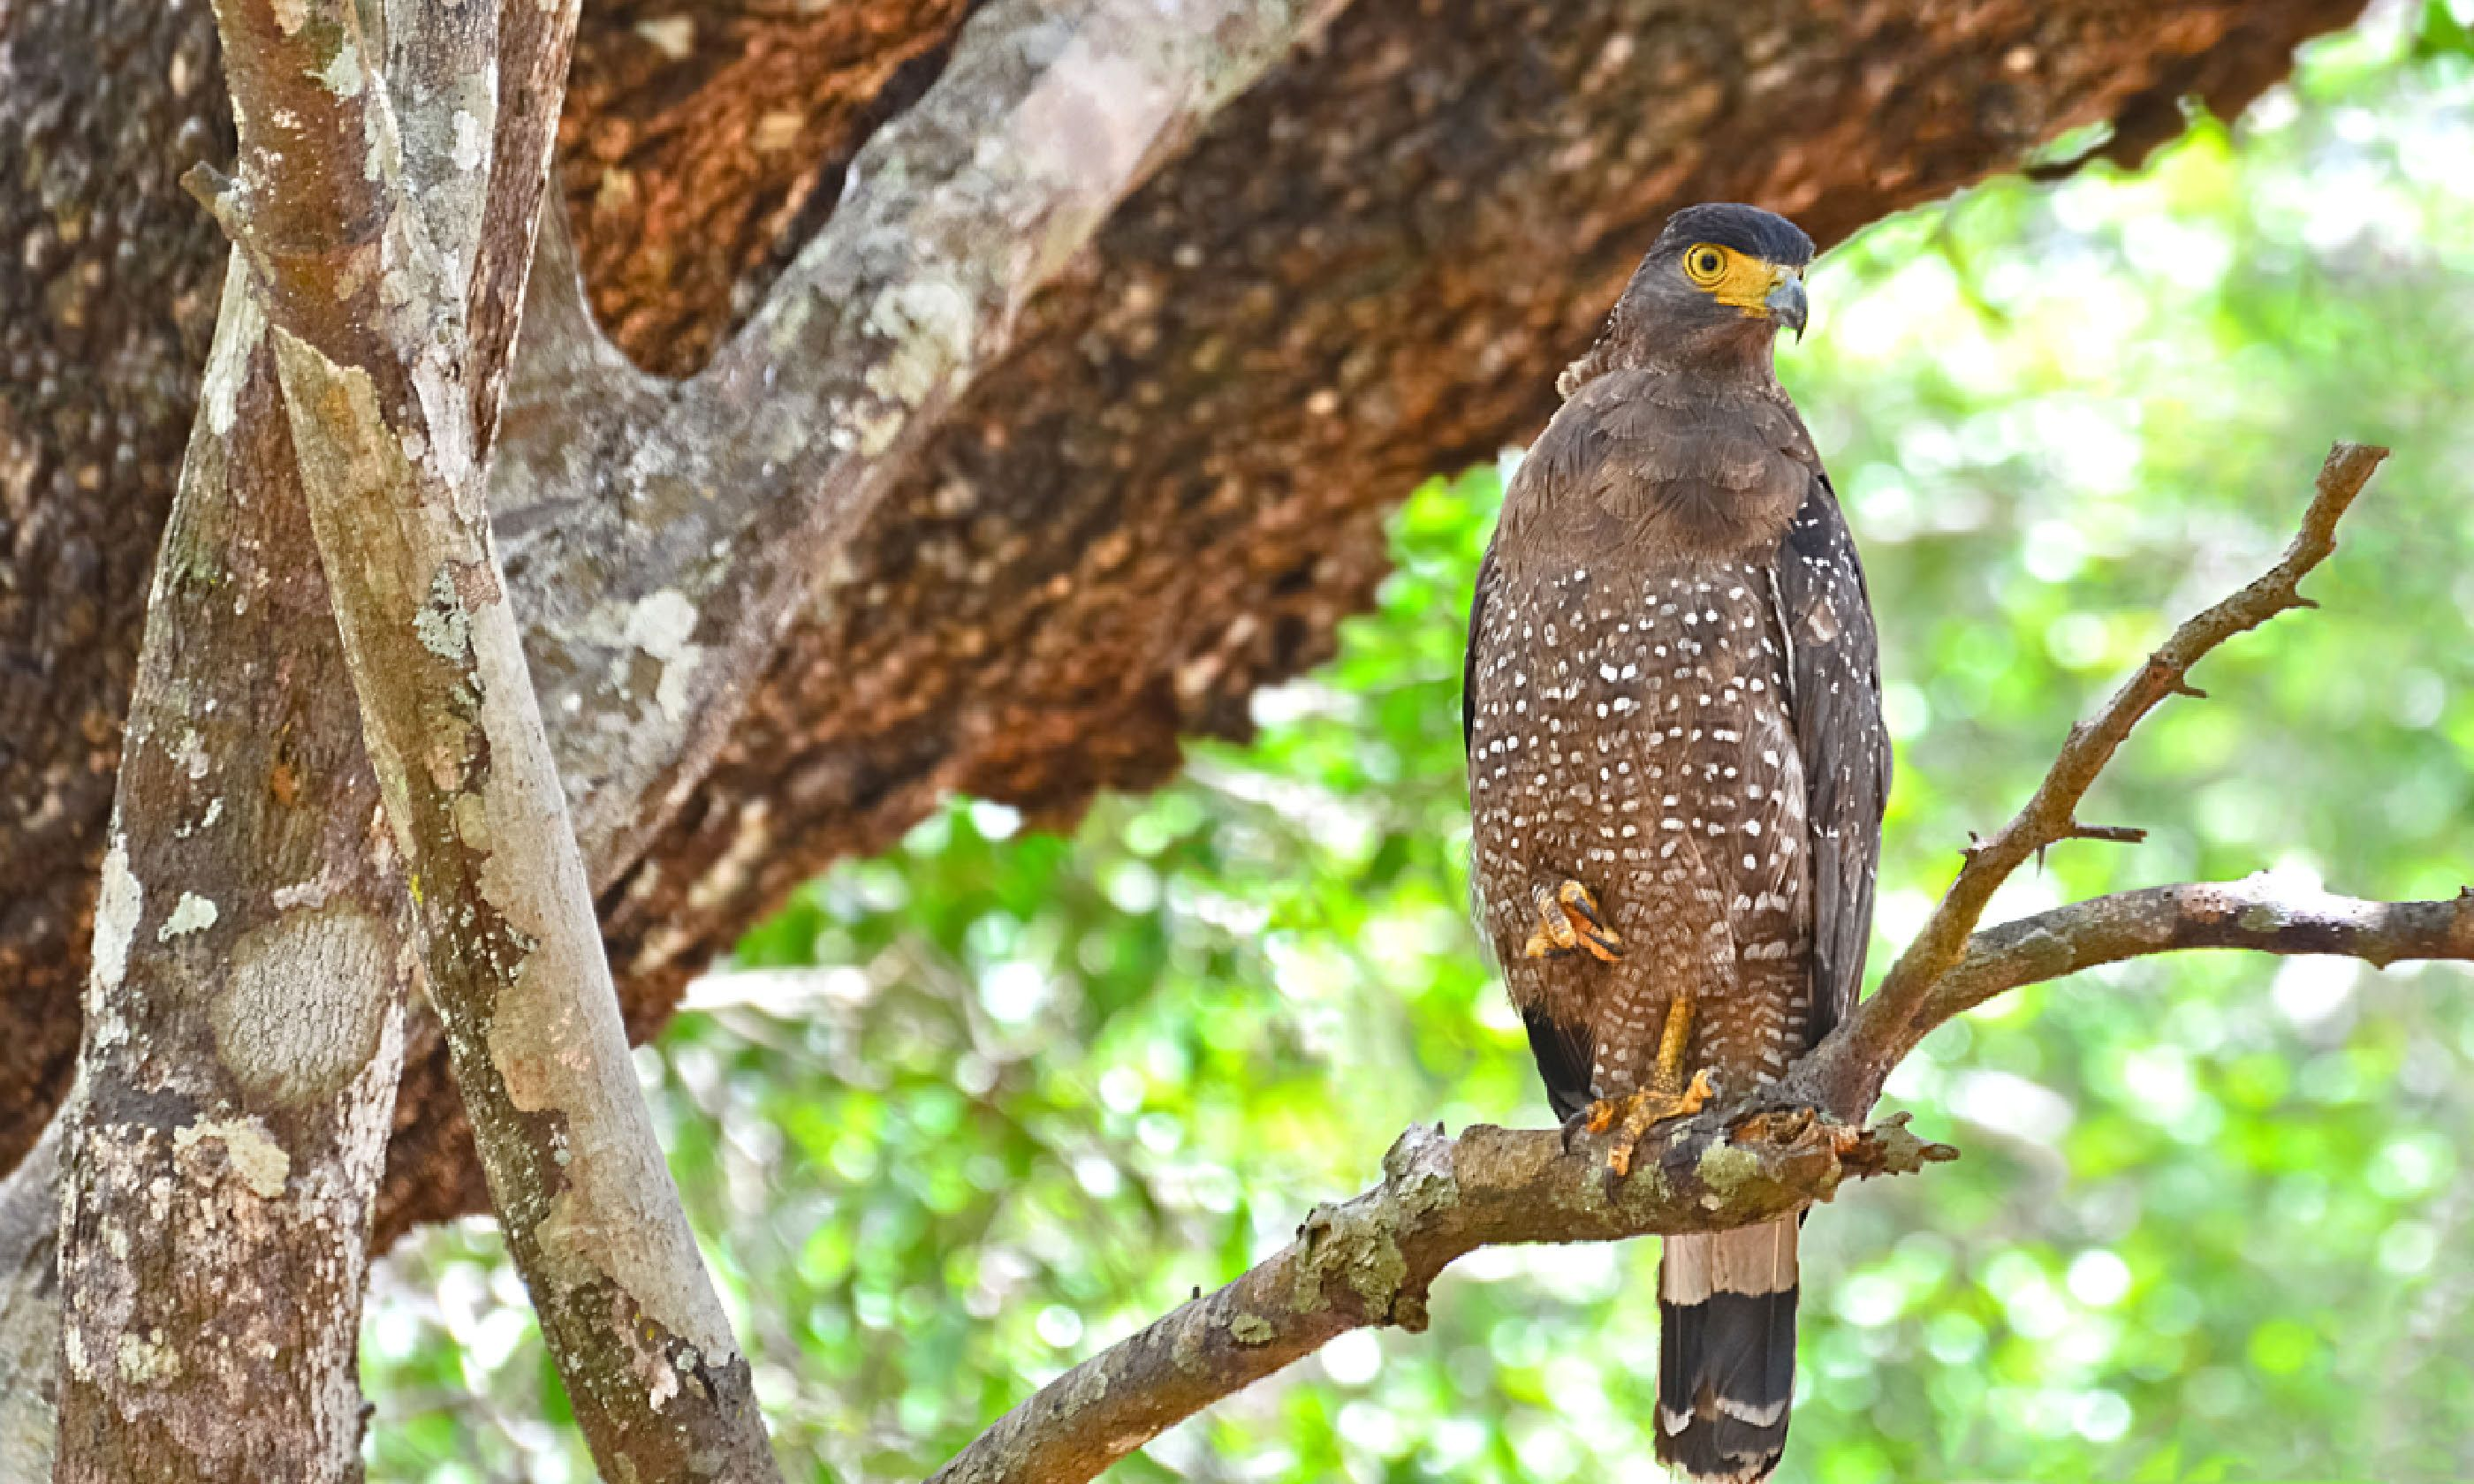 Crested serpent eagle, Wilpattu National Park (Shutterstock)